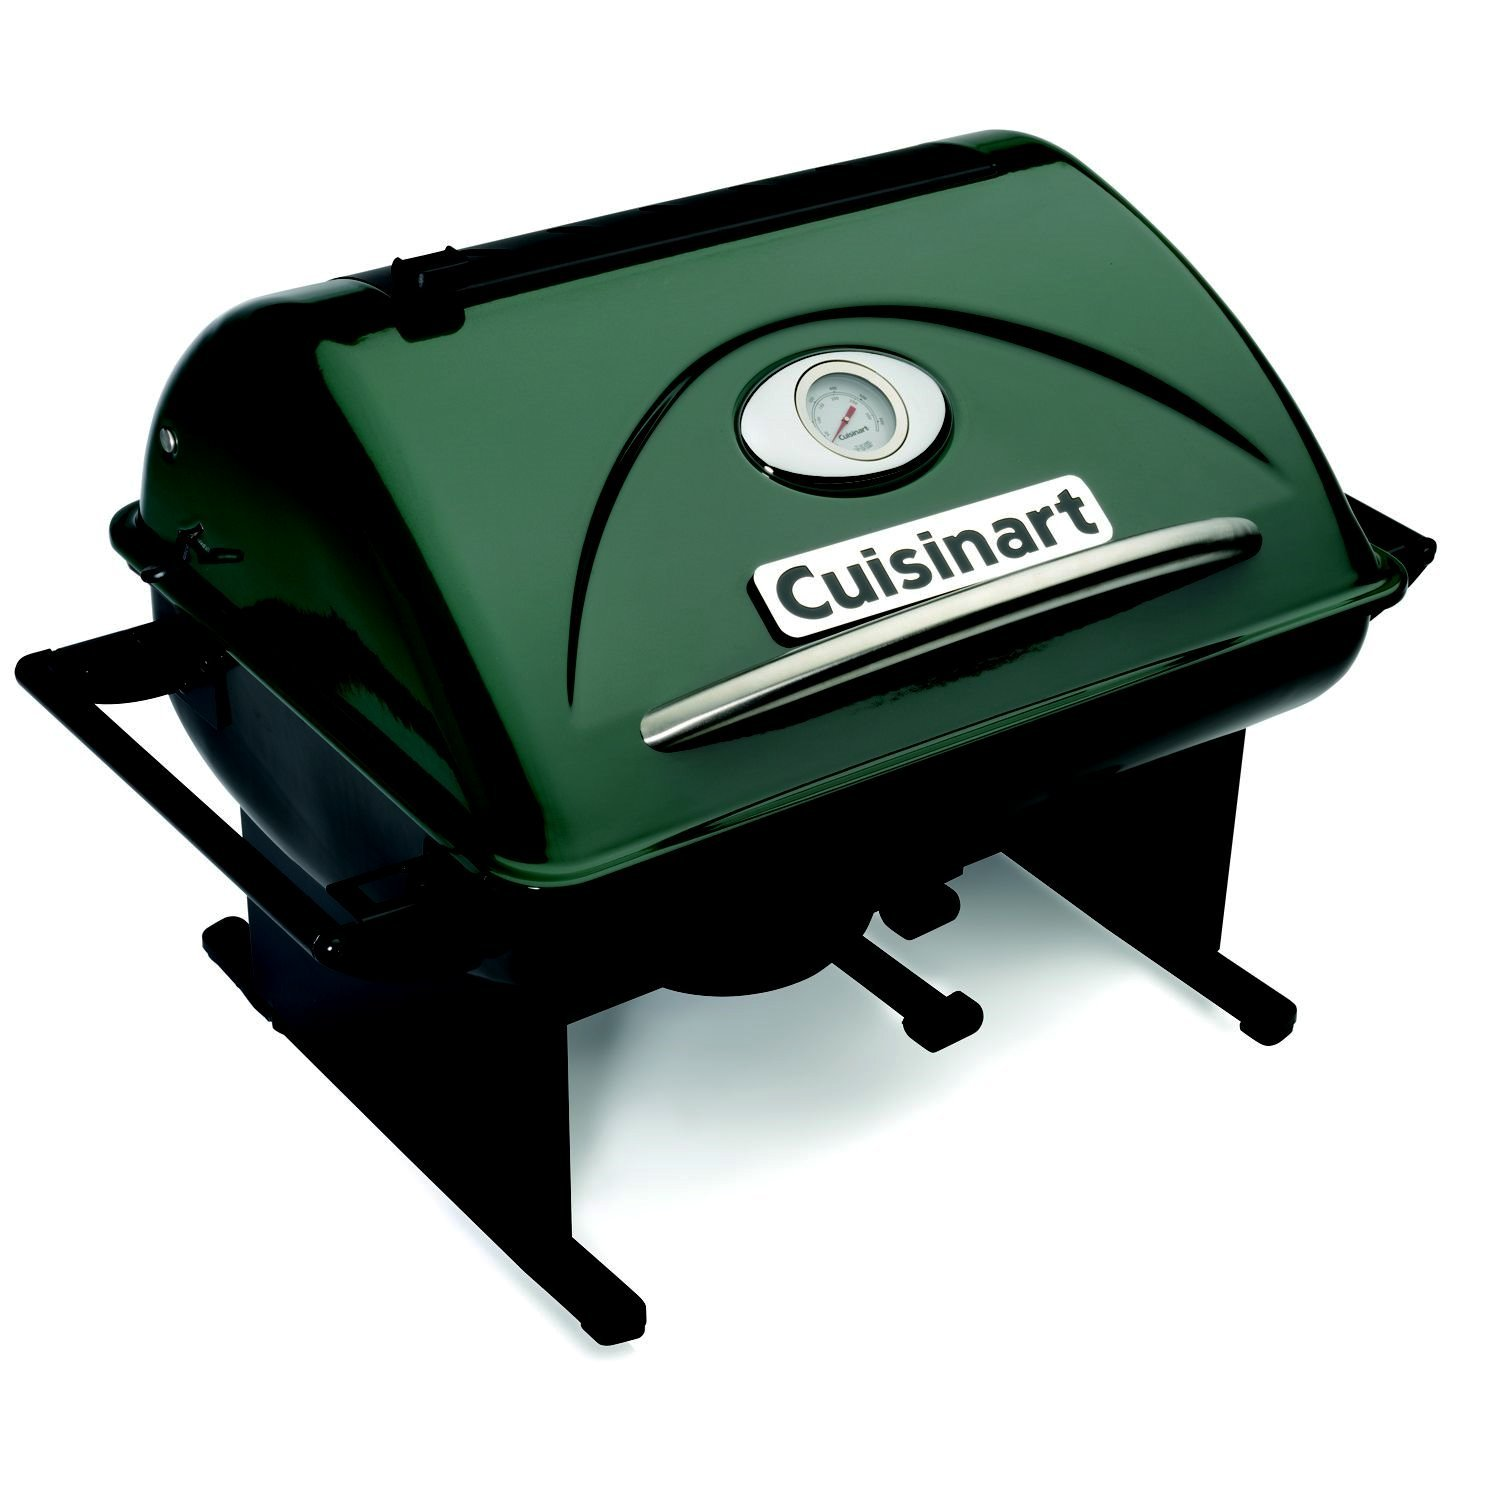 Charcoal - Grill Bbq Pro Grill. This GrateLifter Portable Is Great Addition To Any Lawn, Backyard, Patio Or Gazebo. The Best Choice For Cooking Meat Steak On Outdoor Barbecue Or Grilling Party.